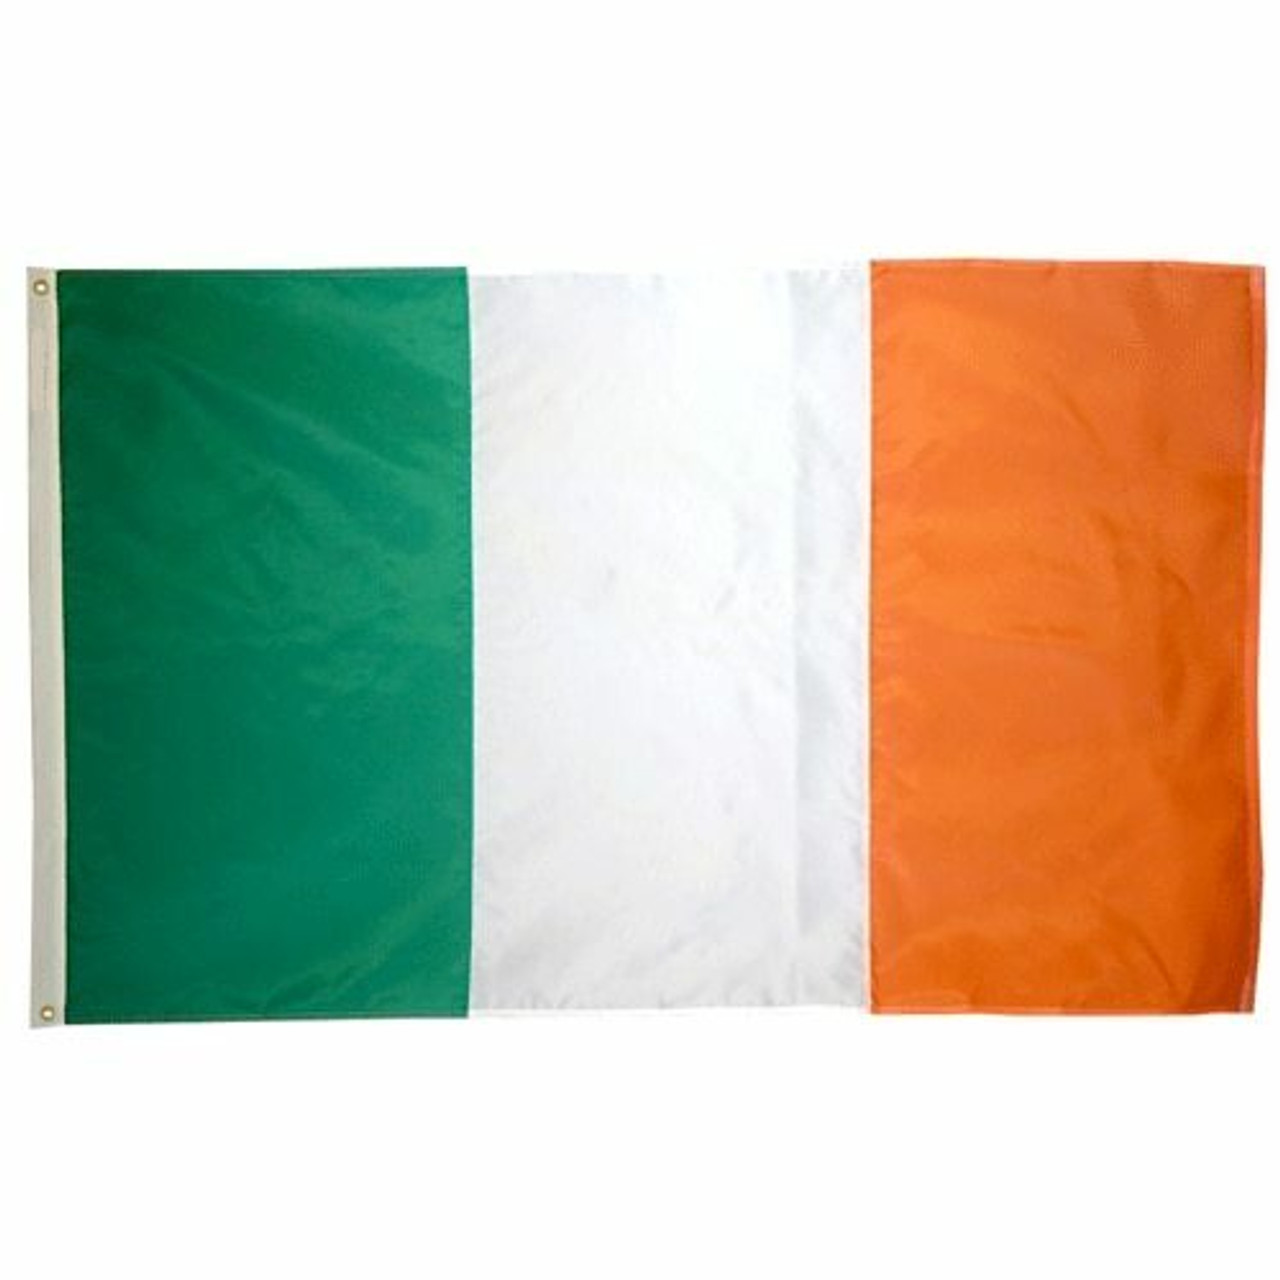 The flag of Ireland, also known as the Irish tricolor, is a simple flag consisting of a green vertical panel, a white panel in the center, and an orange vertical panel on the right side. The flag gets its design from the original tricolor panels of the French revolution, and symbolizes the unification between Irish Roman Catholics and Irish Protestants.